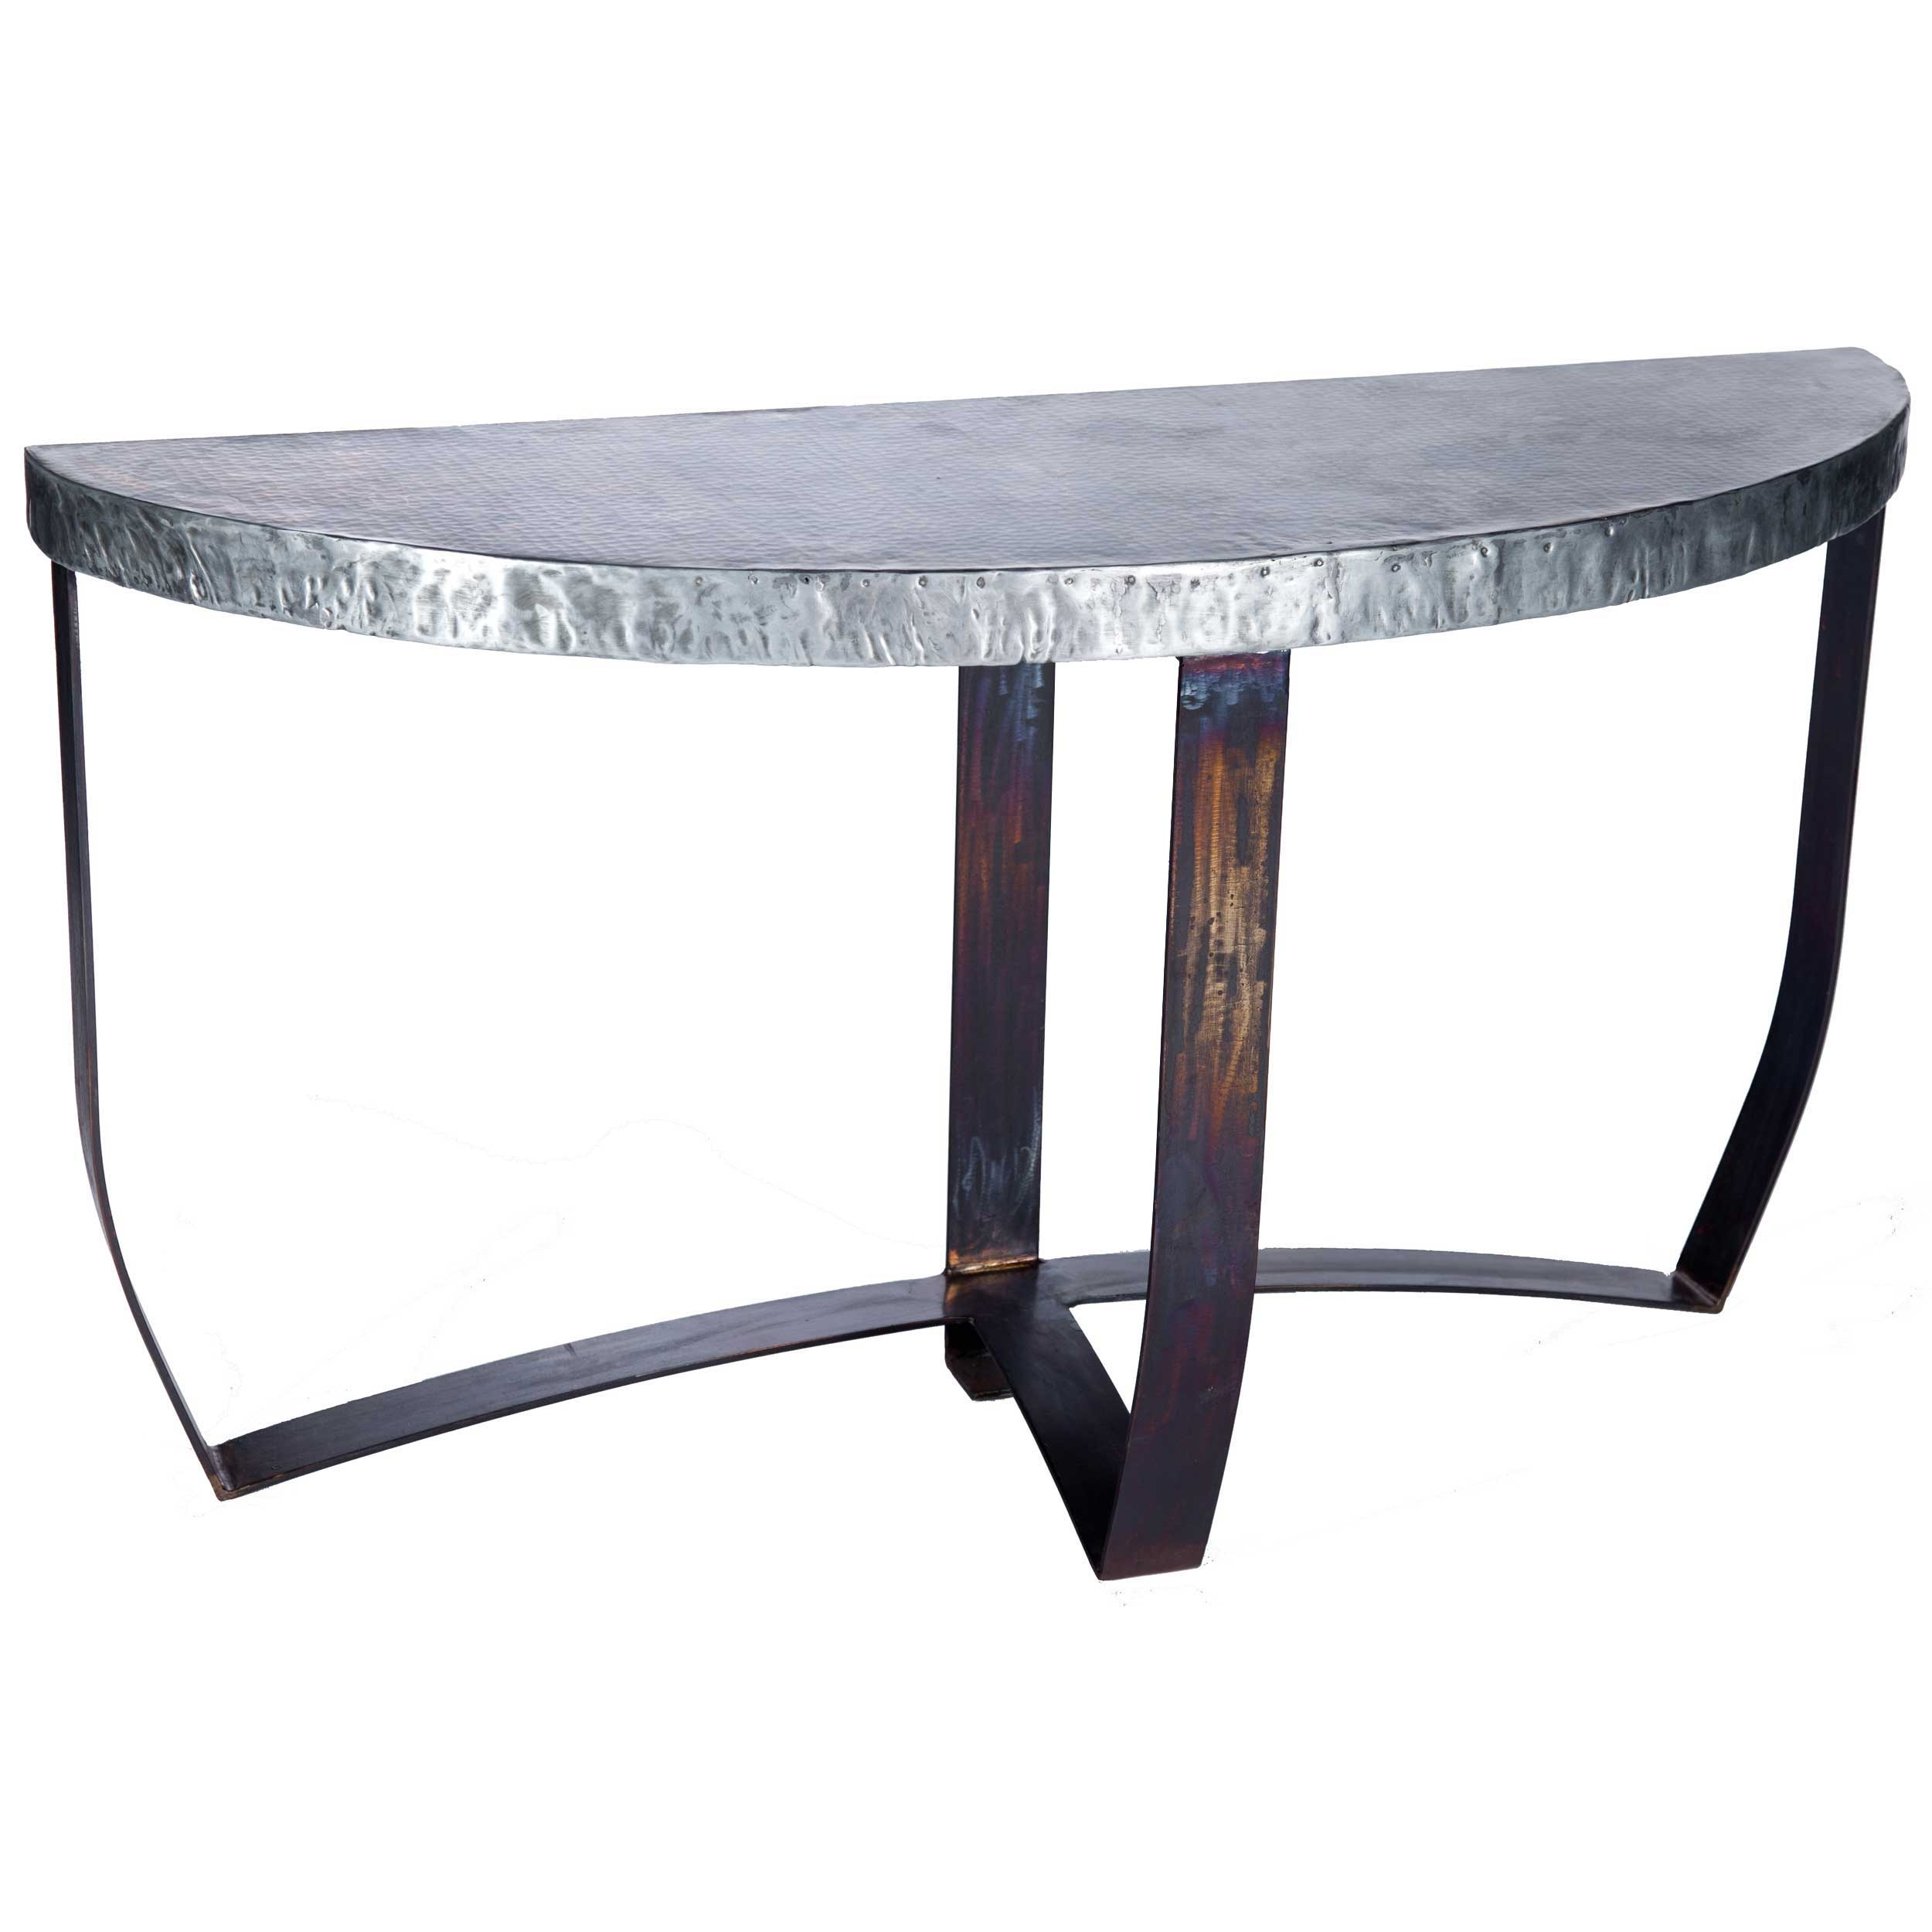 Demi Lune Iron Strap Console Table with Hammered Zinc Top : TWI PM 2M5 F 525B 2 from www.timelesswroughtiron.com size 2500 x 2500 jpeg 552kB